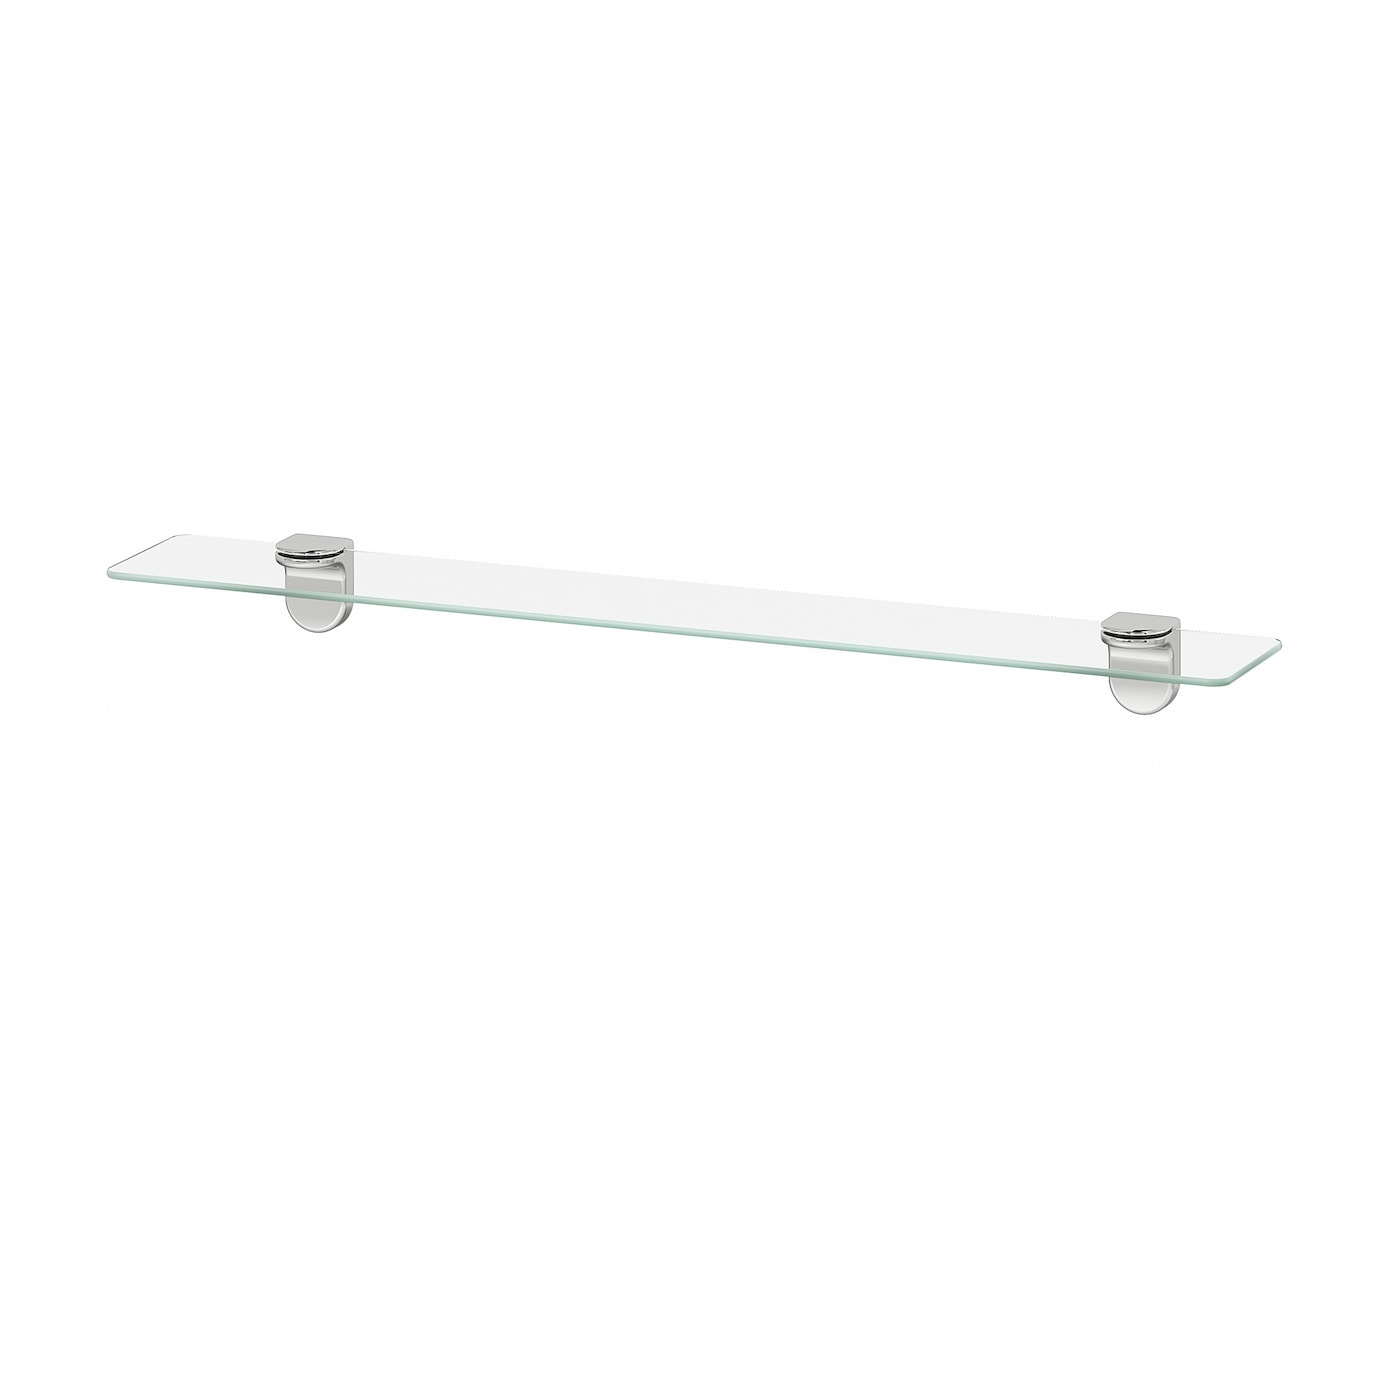 IKEA KALKGRUND glass shelf Tempered glass - extra resistant to heat, impact and heavy loads.